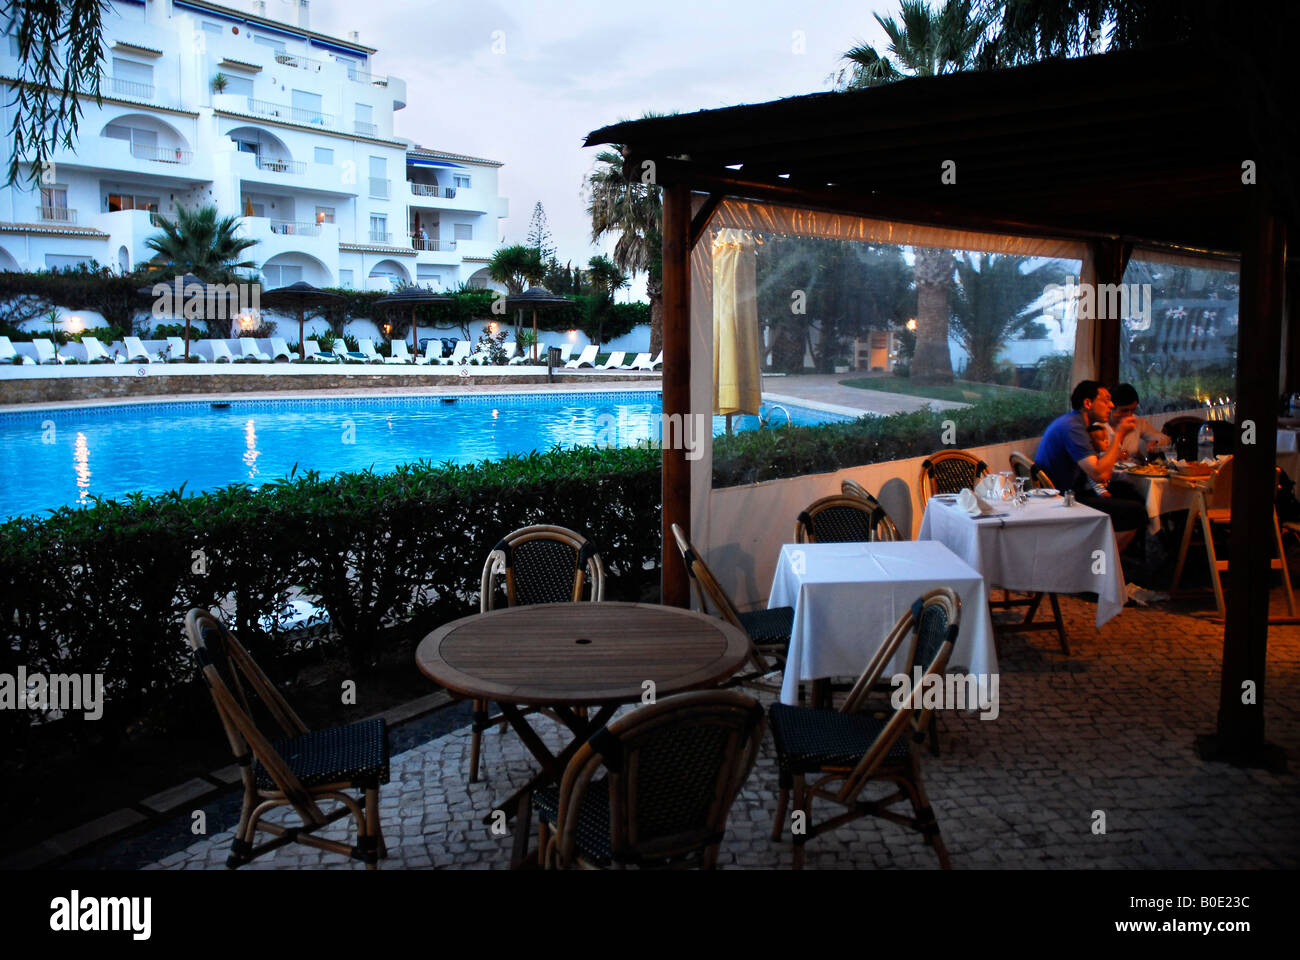 Picture Gallery - Page 18 Disappearance-of-madeleine-mccann-restaurant-of-the-resort-the-ocean-B0E23C